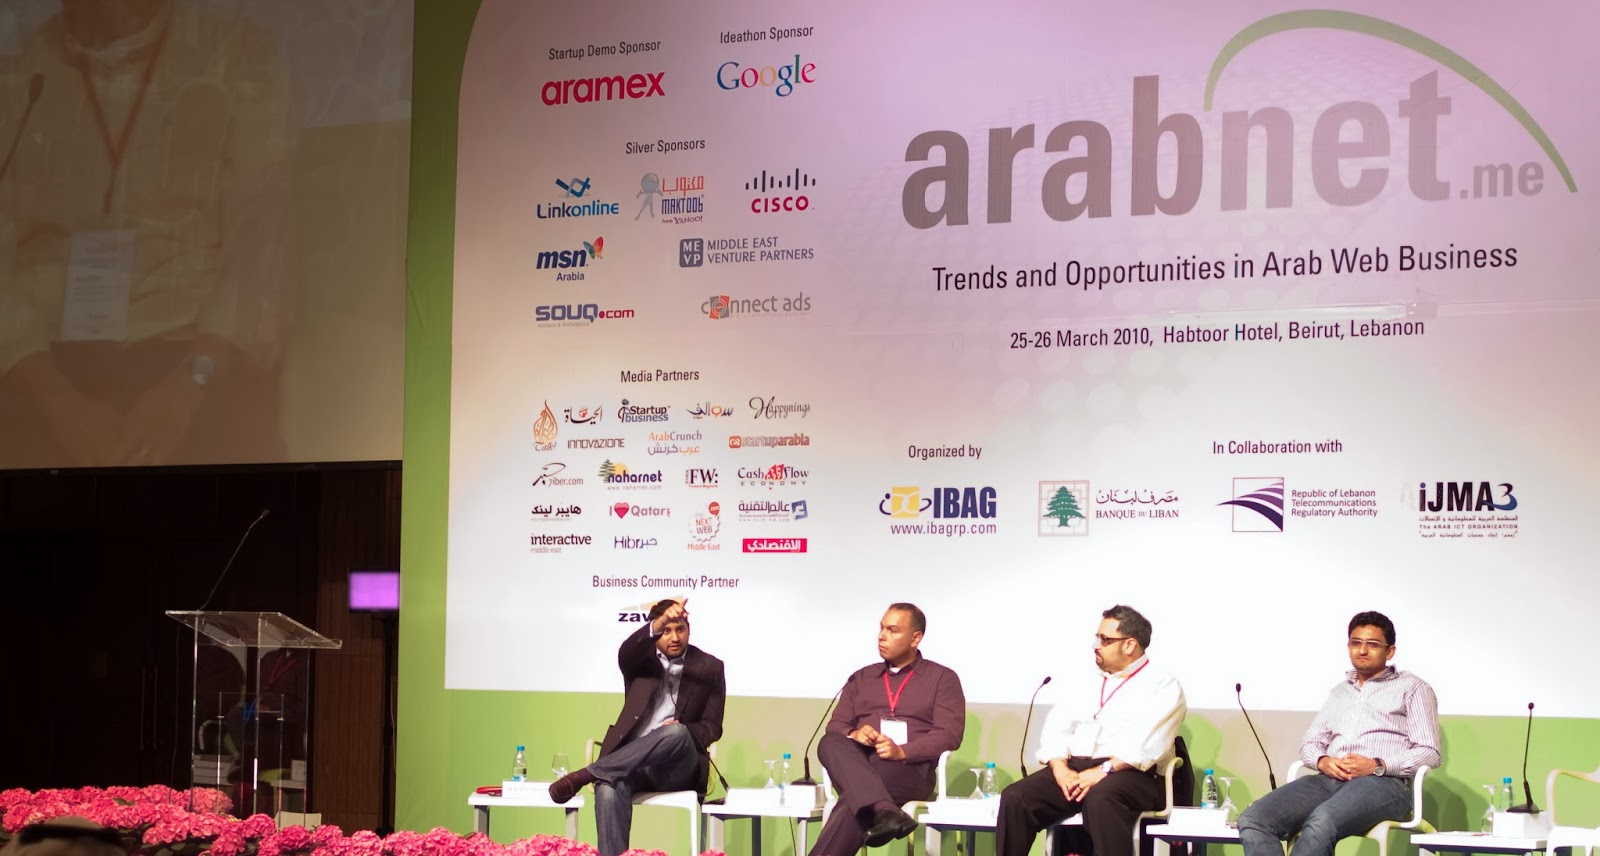 Last week I got my free invitation to attend for the first time the Arabnet conference in Beirut. Arabnet the largest regional event of its kind for the digital creative sectors, will be attended by over 600 online and mobile professionals and entrepreneurs will be held  in Beirut from 20-22 March. Thank you Arabnet  for the invitation,  see you next week.